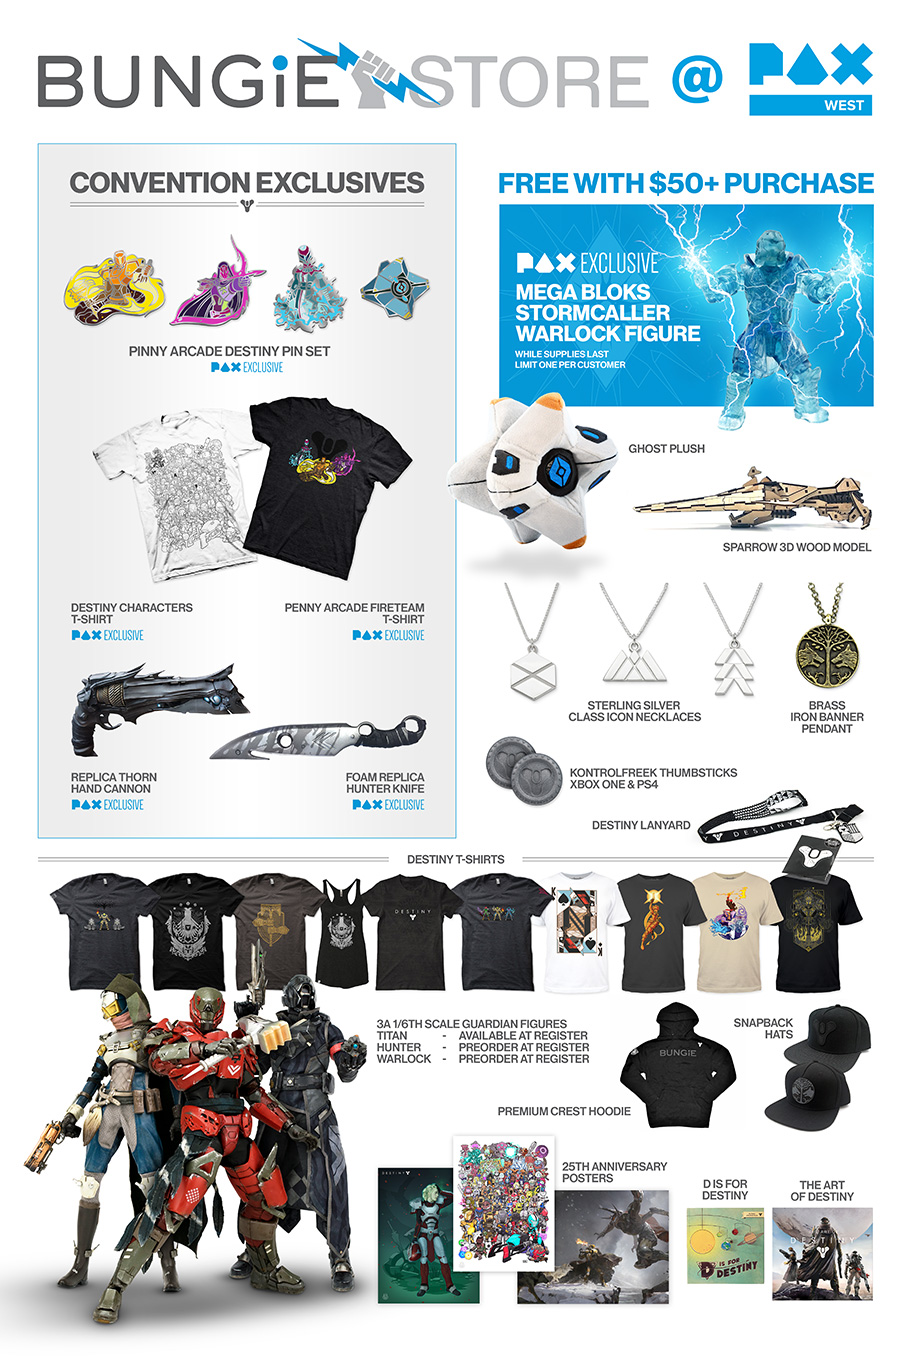 08252016_Bungie_Store_PAX